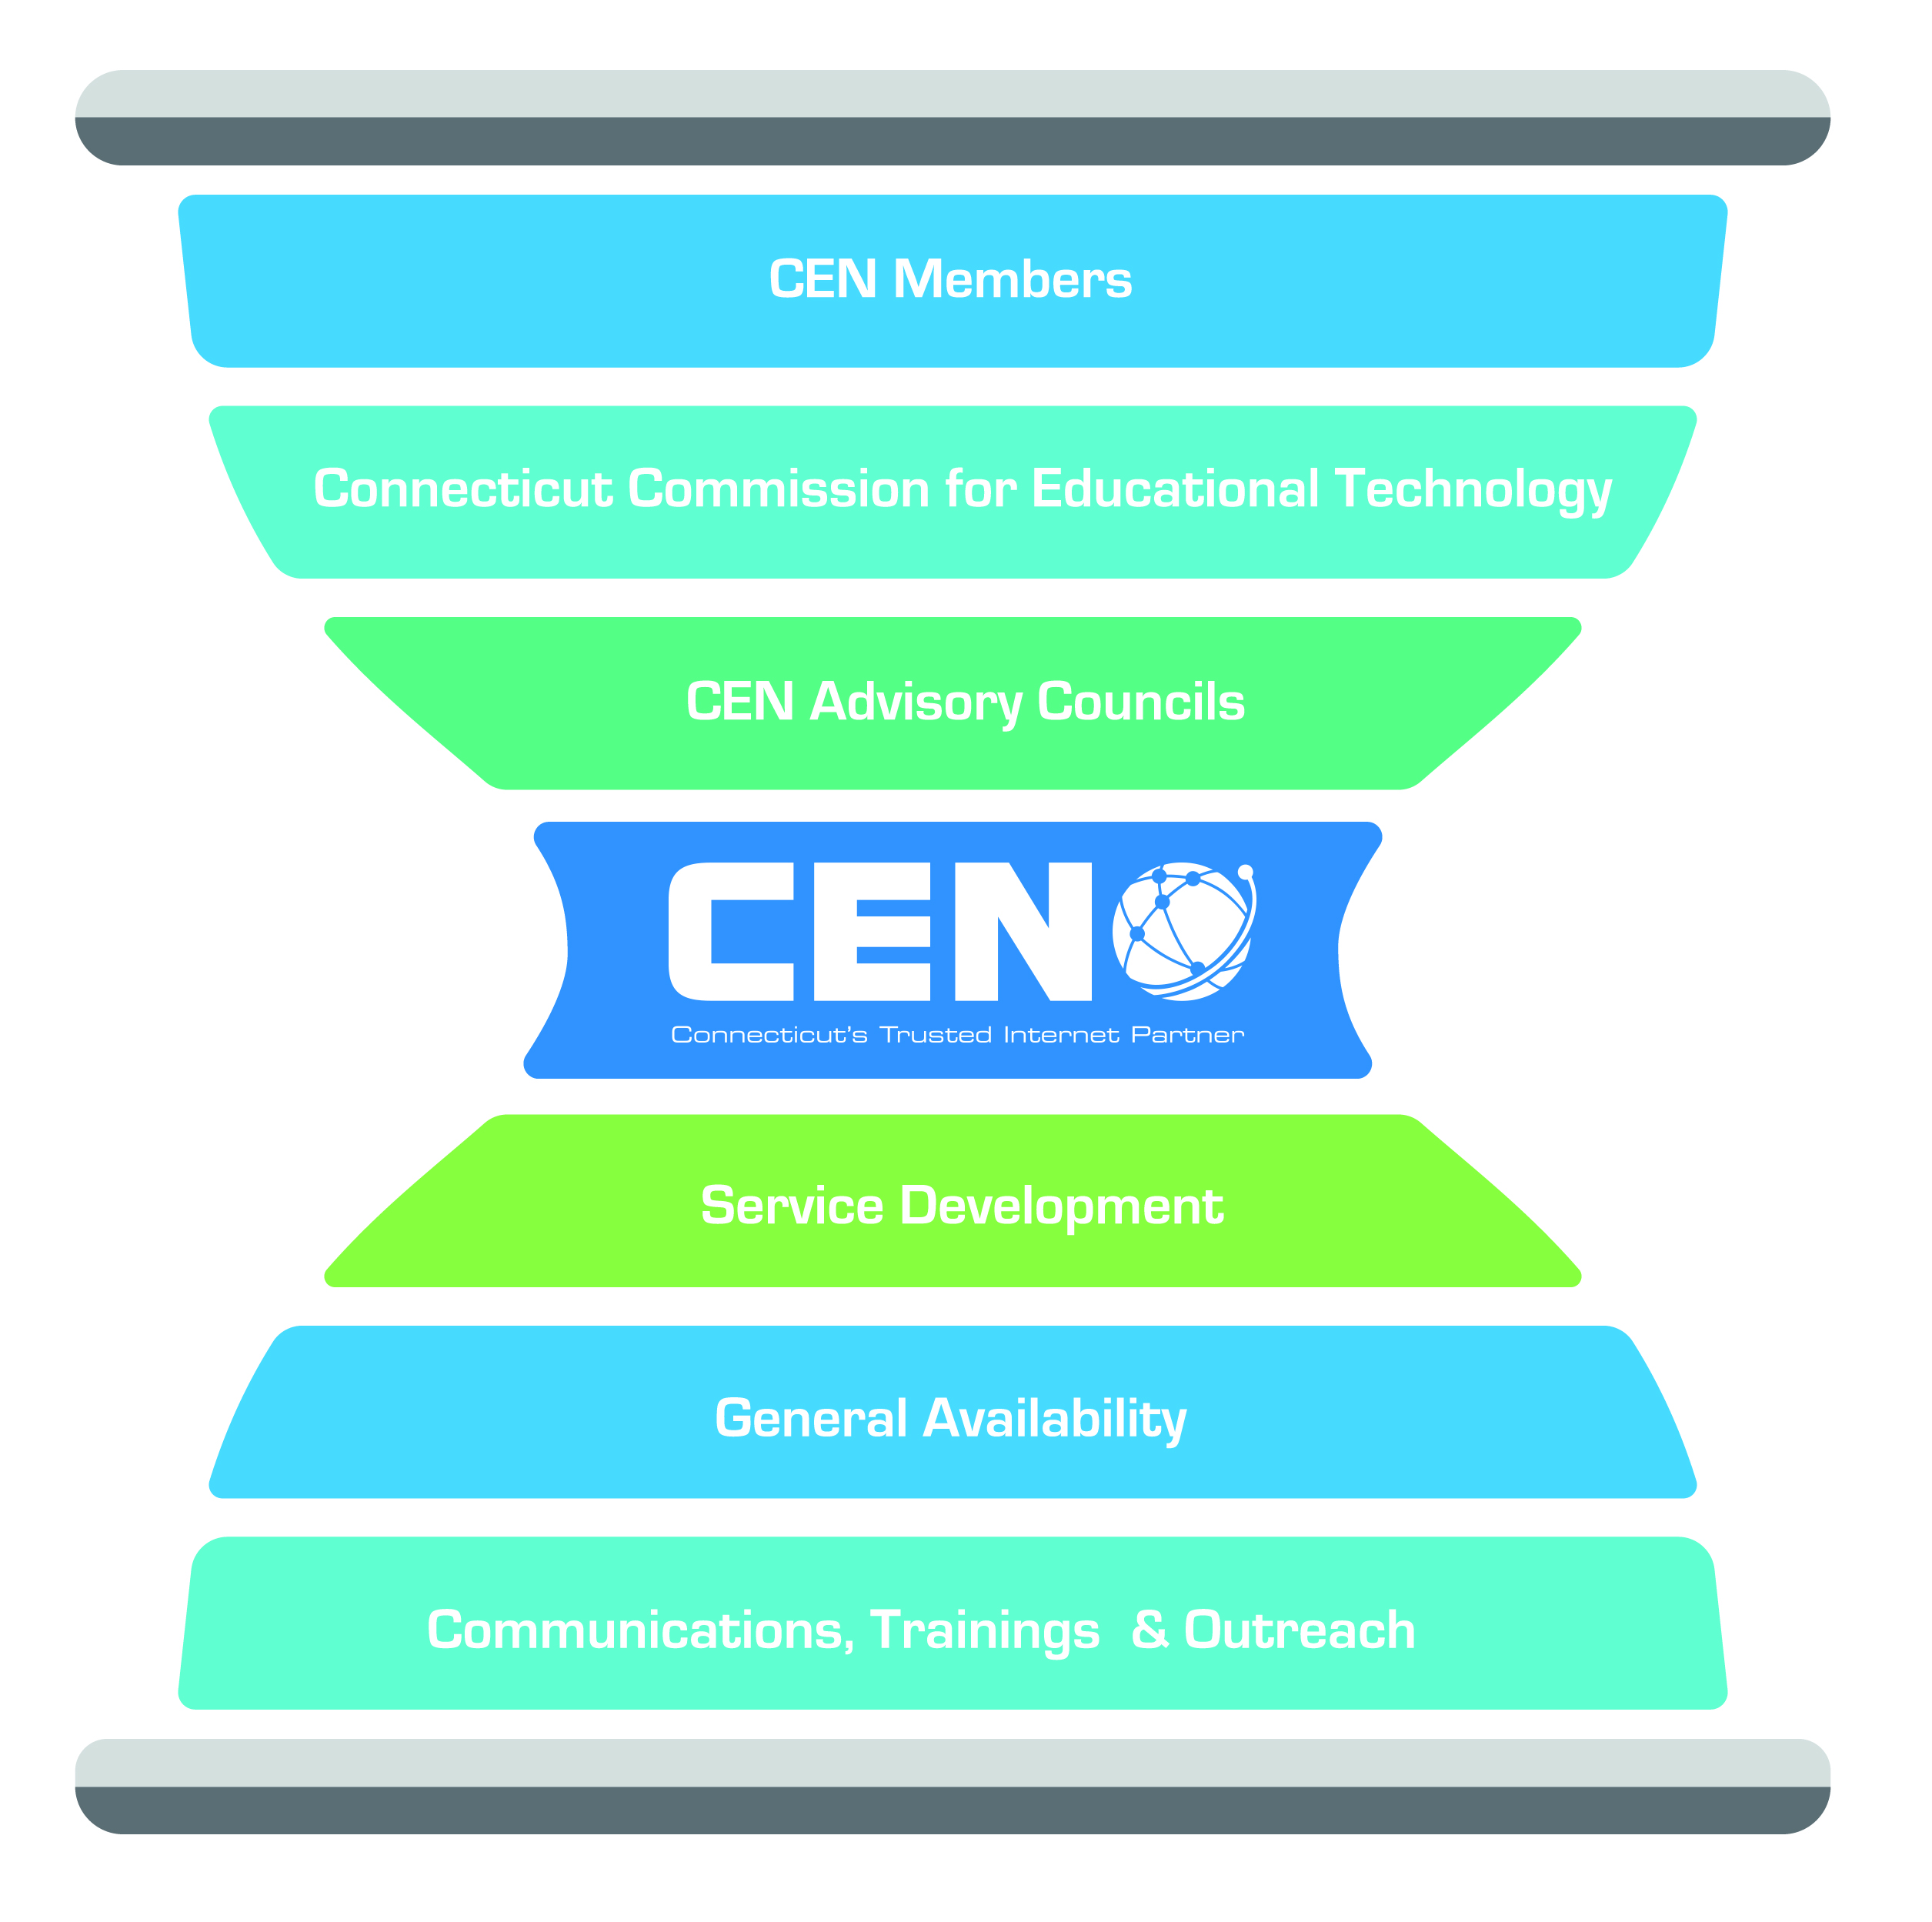 Hourglass made up of bars that read: CEN Members, Connecticut Commission for Educational Technology, CEN Advisory Councils, Service Development, General Availability, and Communications, Training & Outreach